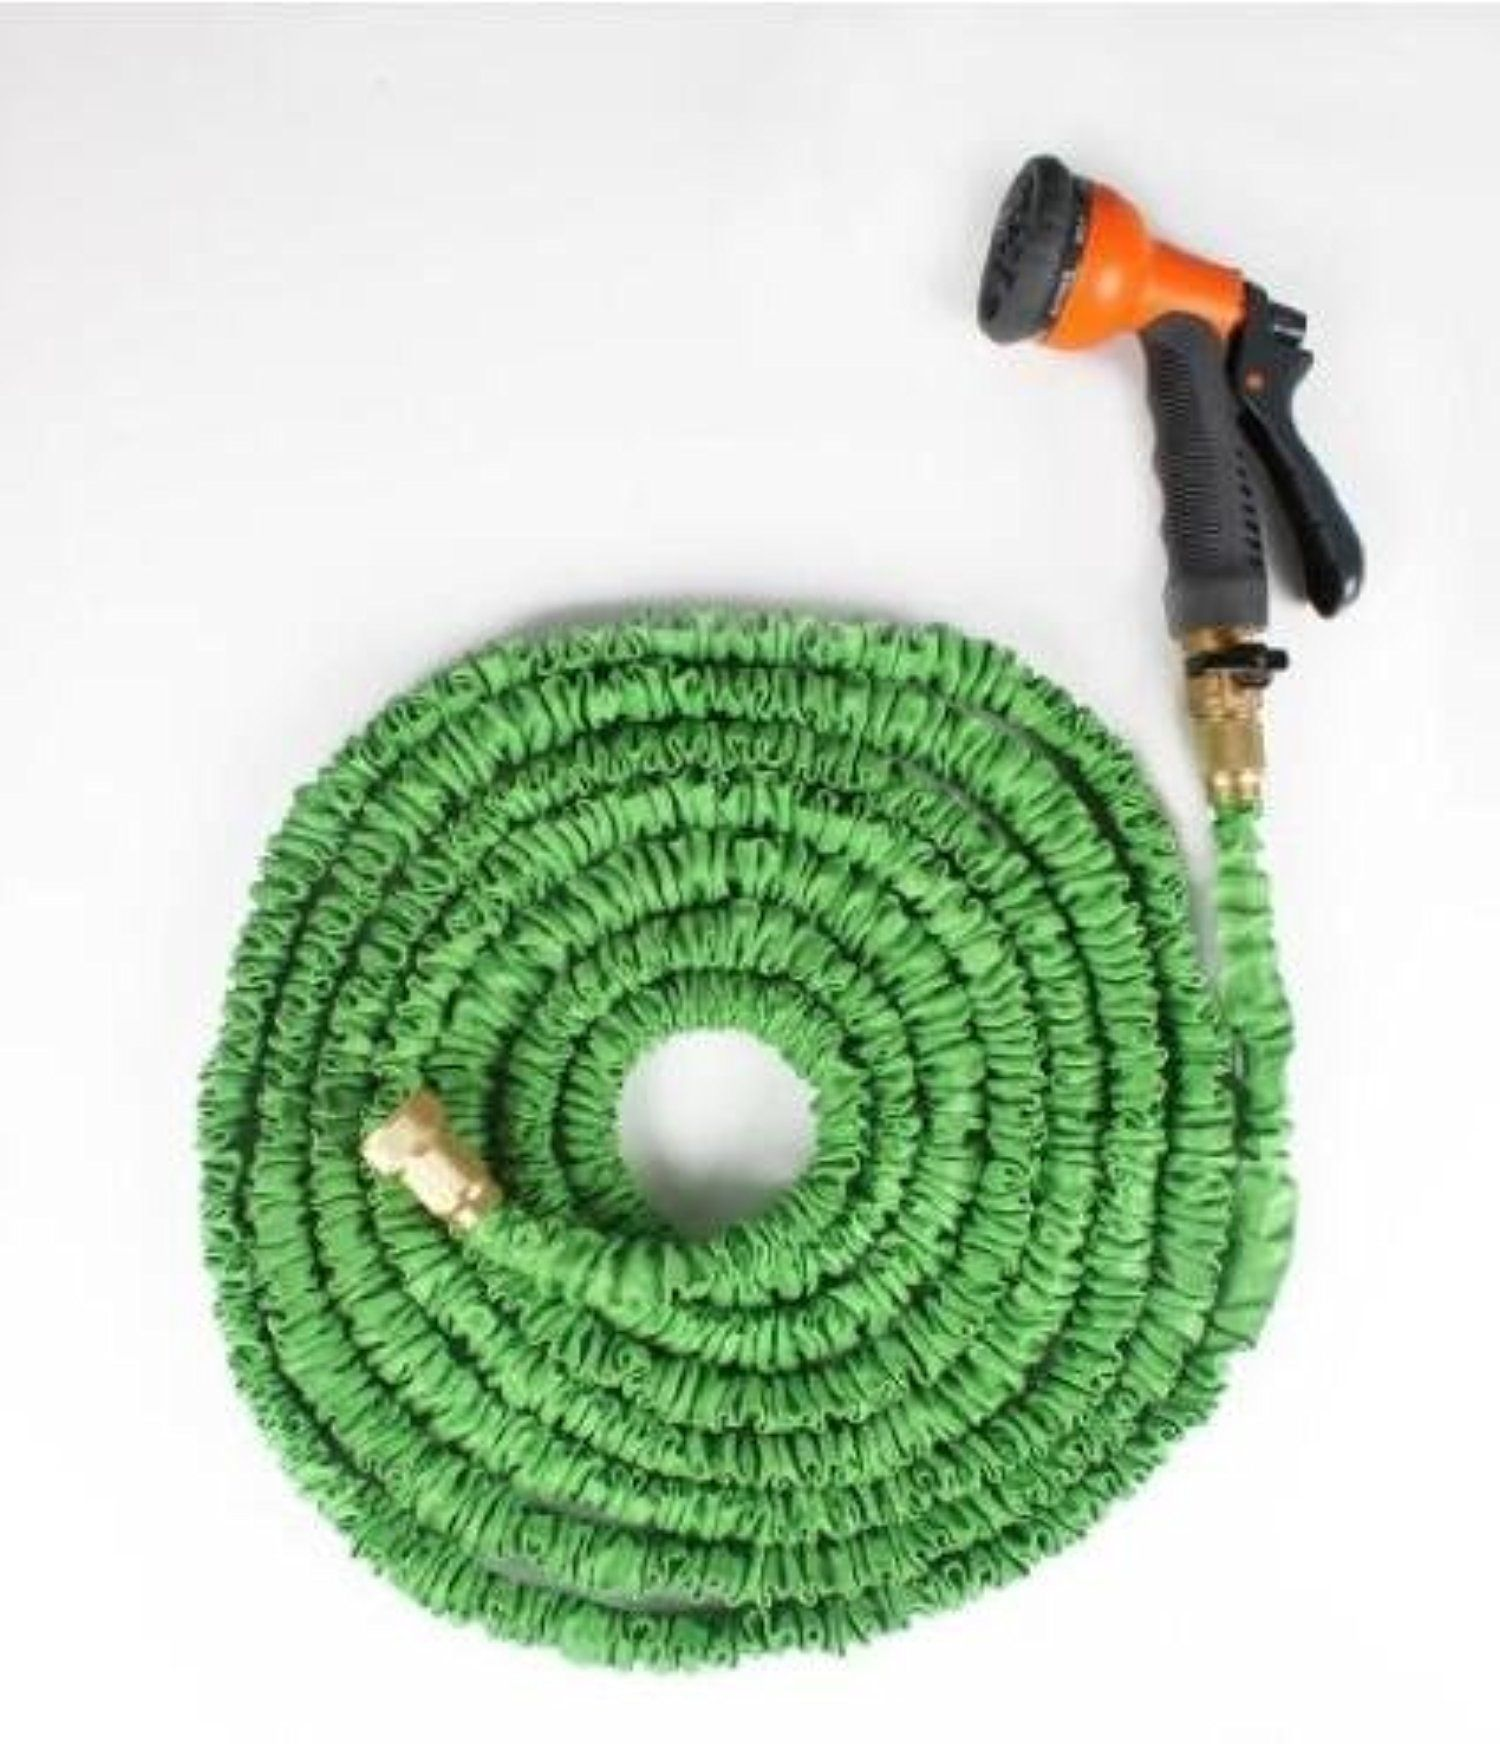 Speedcontrol 25 Feet Flexible Collapsible Garden Hose Water Hose With Brass Connector And Spray Nozzle Awesome Products Selected Garden Hose Hose Water Hose